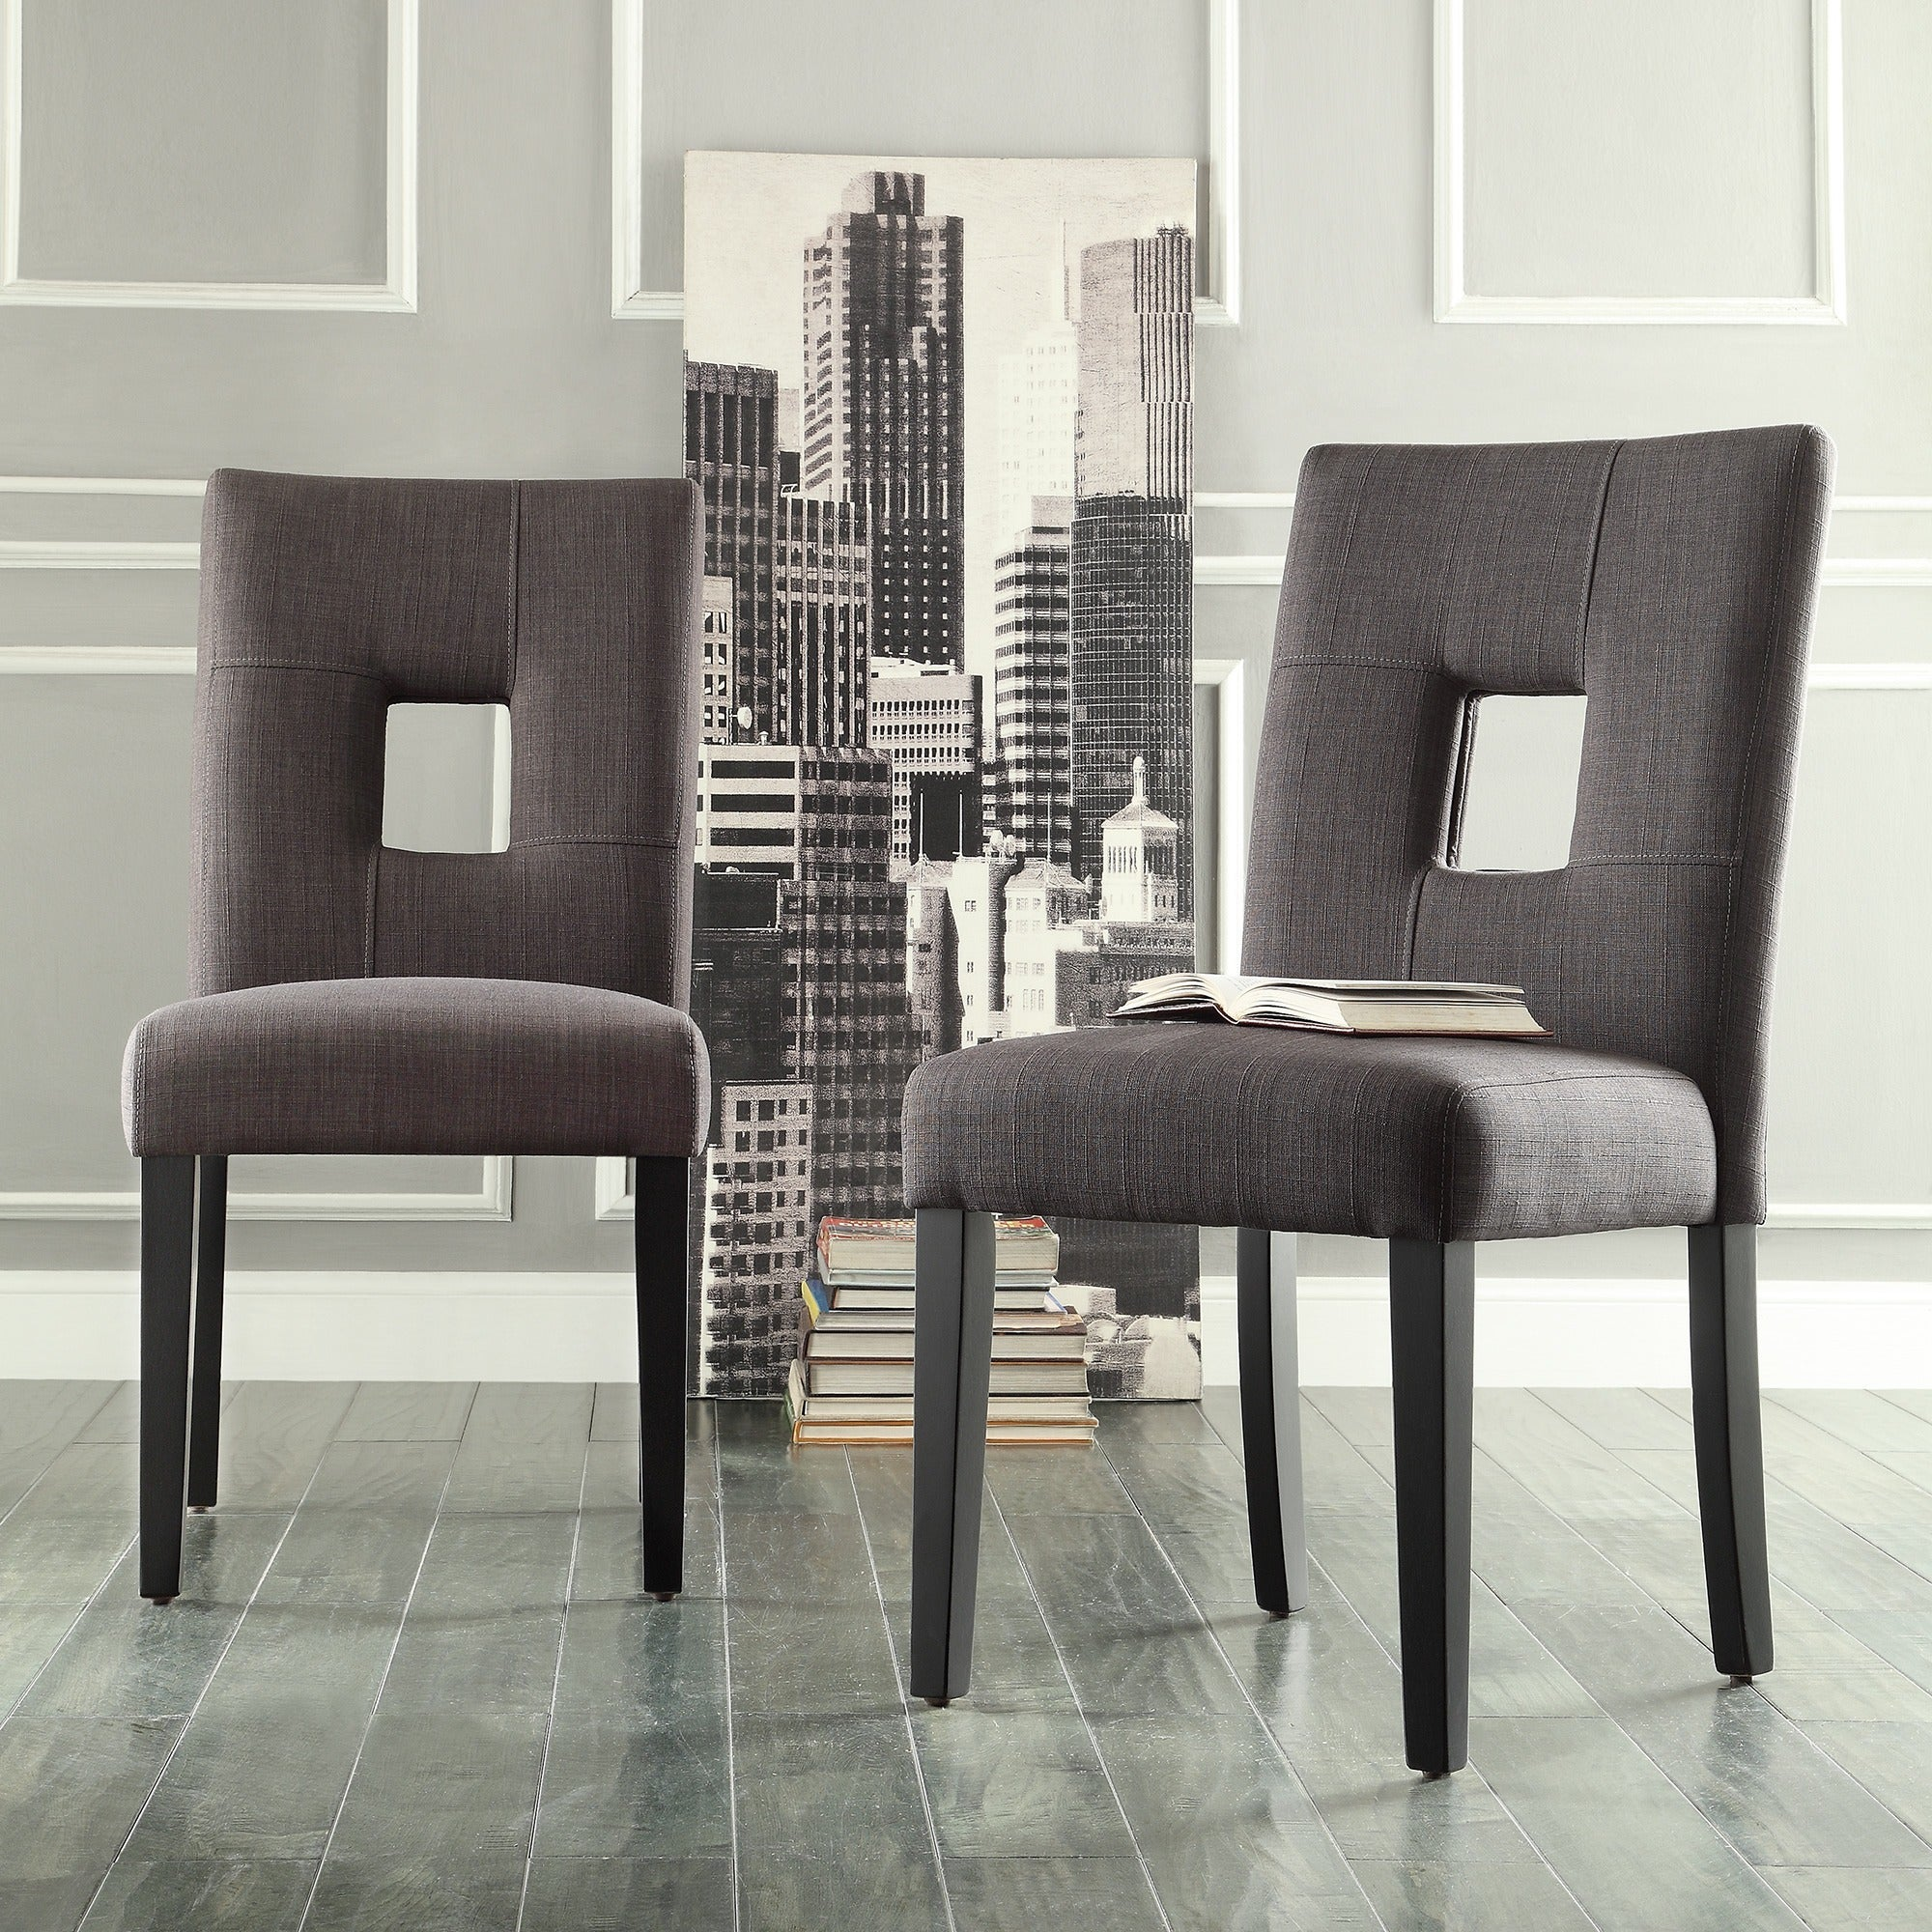 Mendoza Keyhole Back Dining Chairs Set of 2 by iNSPIRE Q Bold eBay